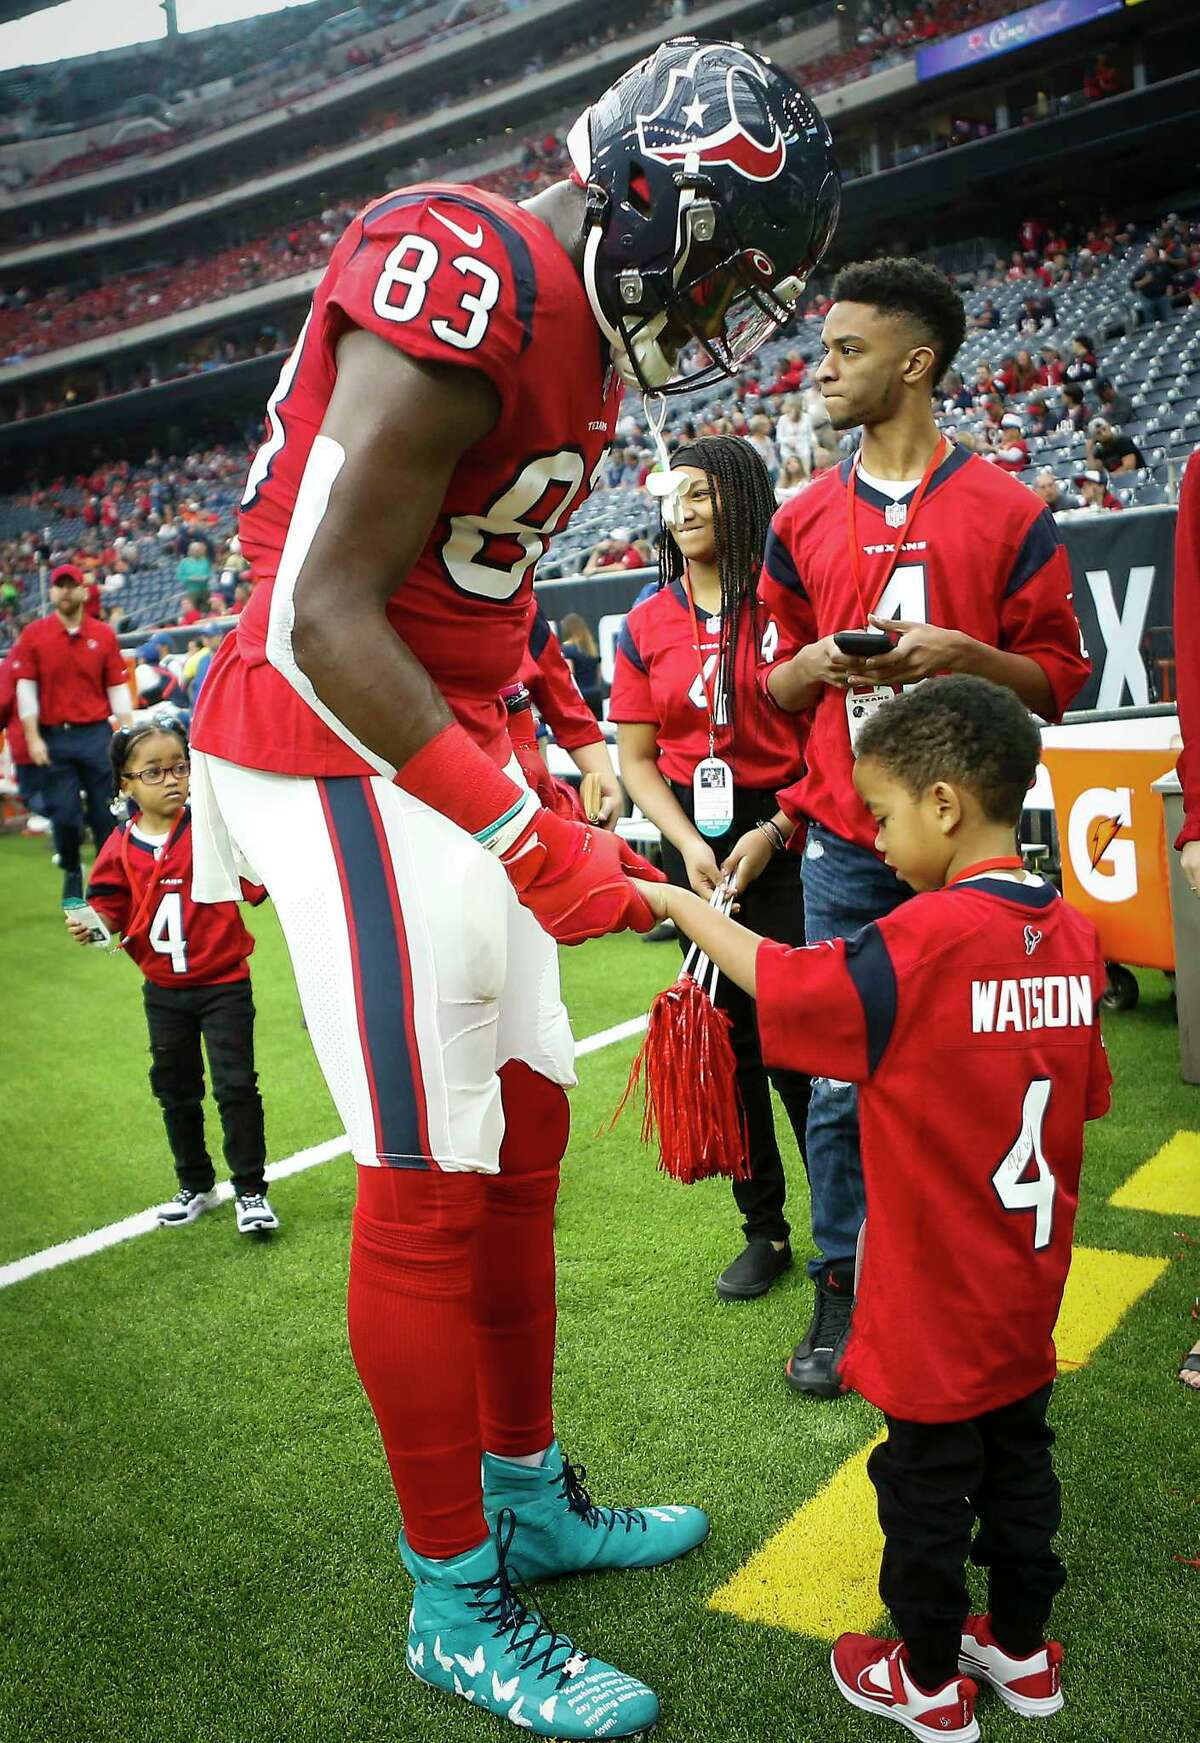 Houston Texans tight end Jordan Thomas (83) greets Daylon Watkins, 7, before an NFL football game against the Denver Broncos at NRG Stadium on Sunday, Dec. 8, 2019, in Houston. Watkins comes to the game through the Make-A-Wish Foundation. Watkins has been diagnosed with Severe Aplastic Anemia and has spent the past couple days visiting the the Texans player during practice and Sunday's game.